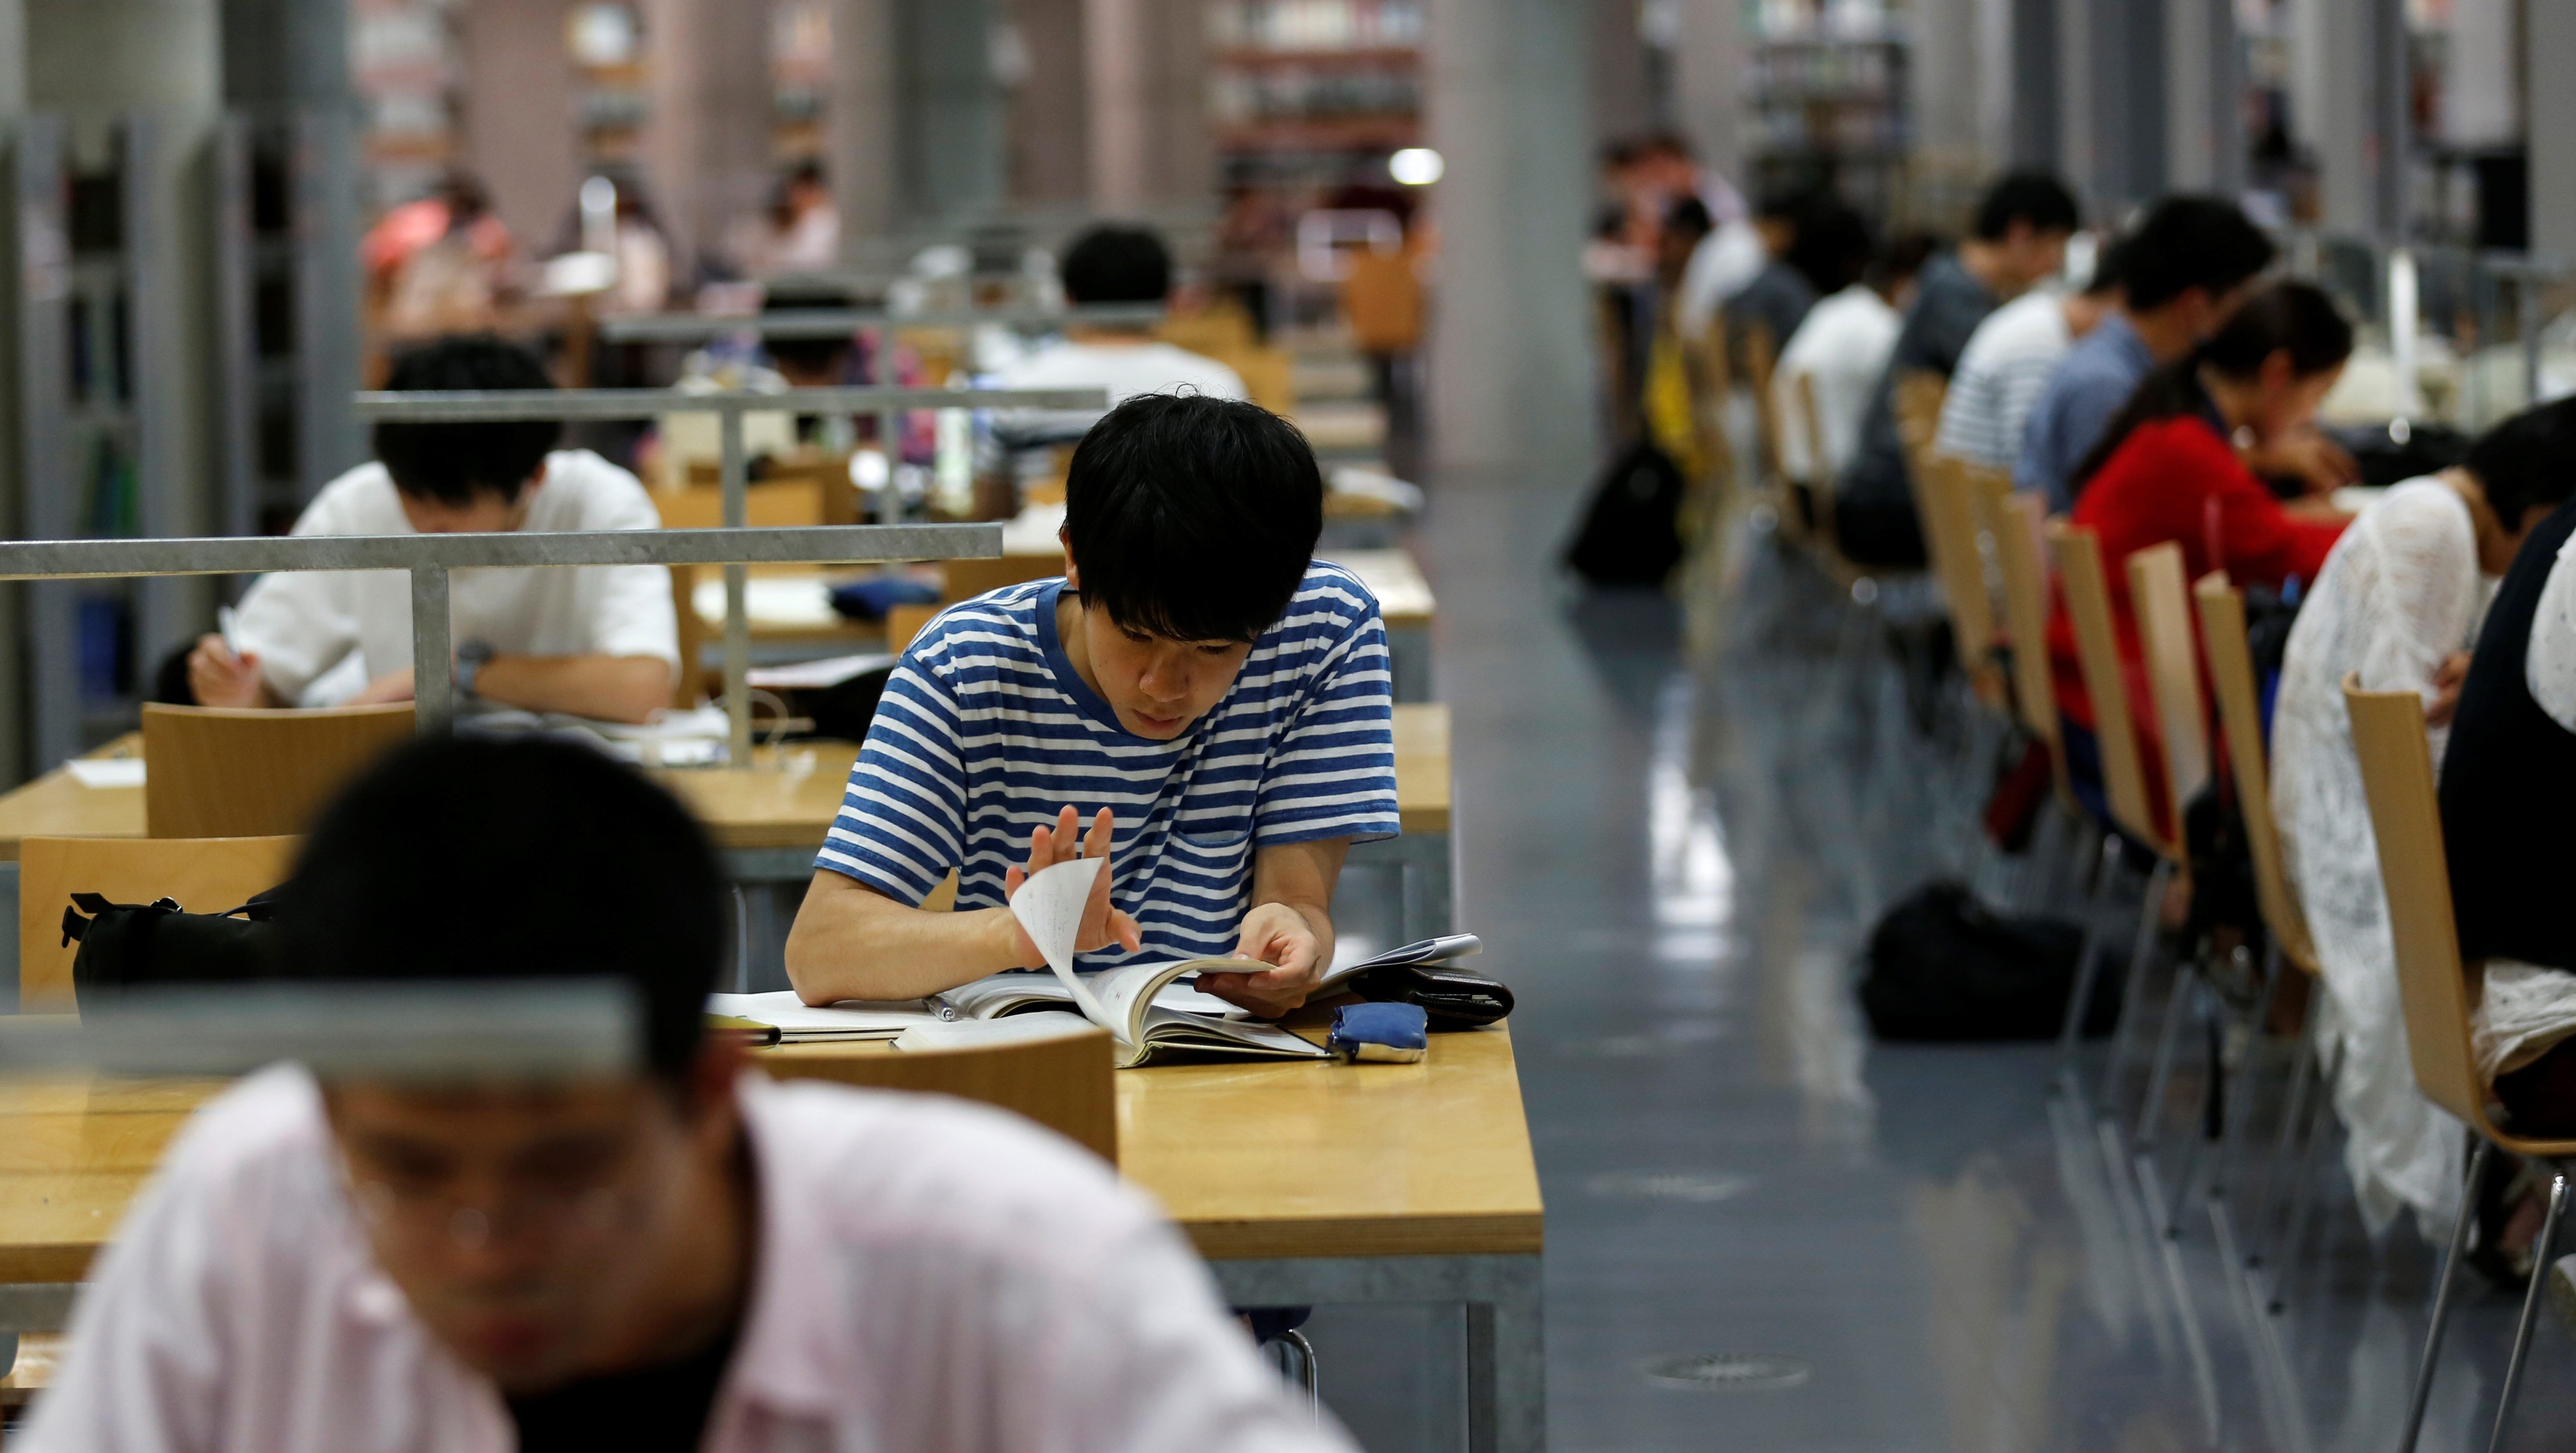 Students study in the Institute Library at Tokyo Institute of Technology in Tokyo, Japan July 14, 2016.